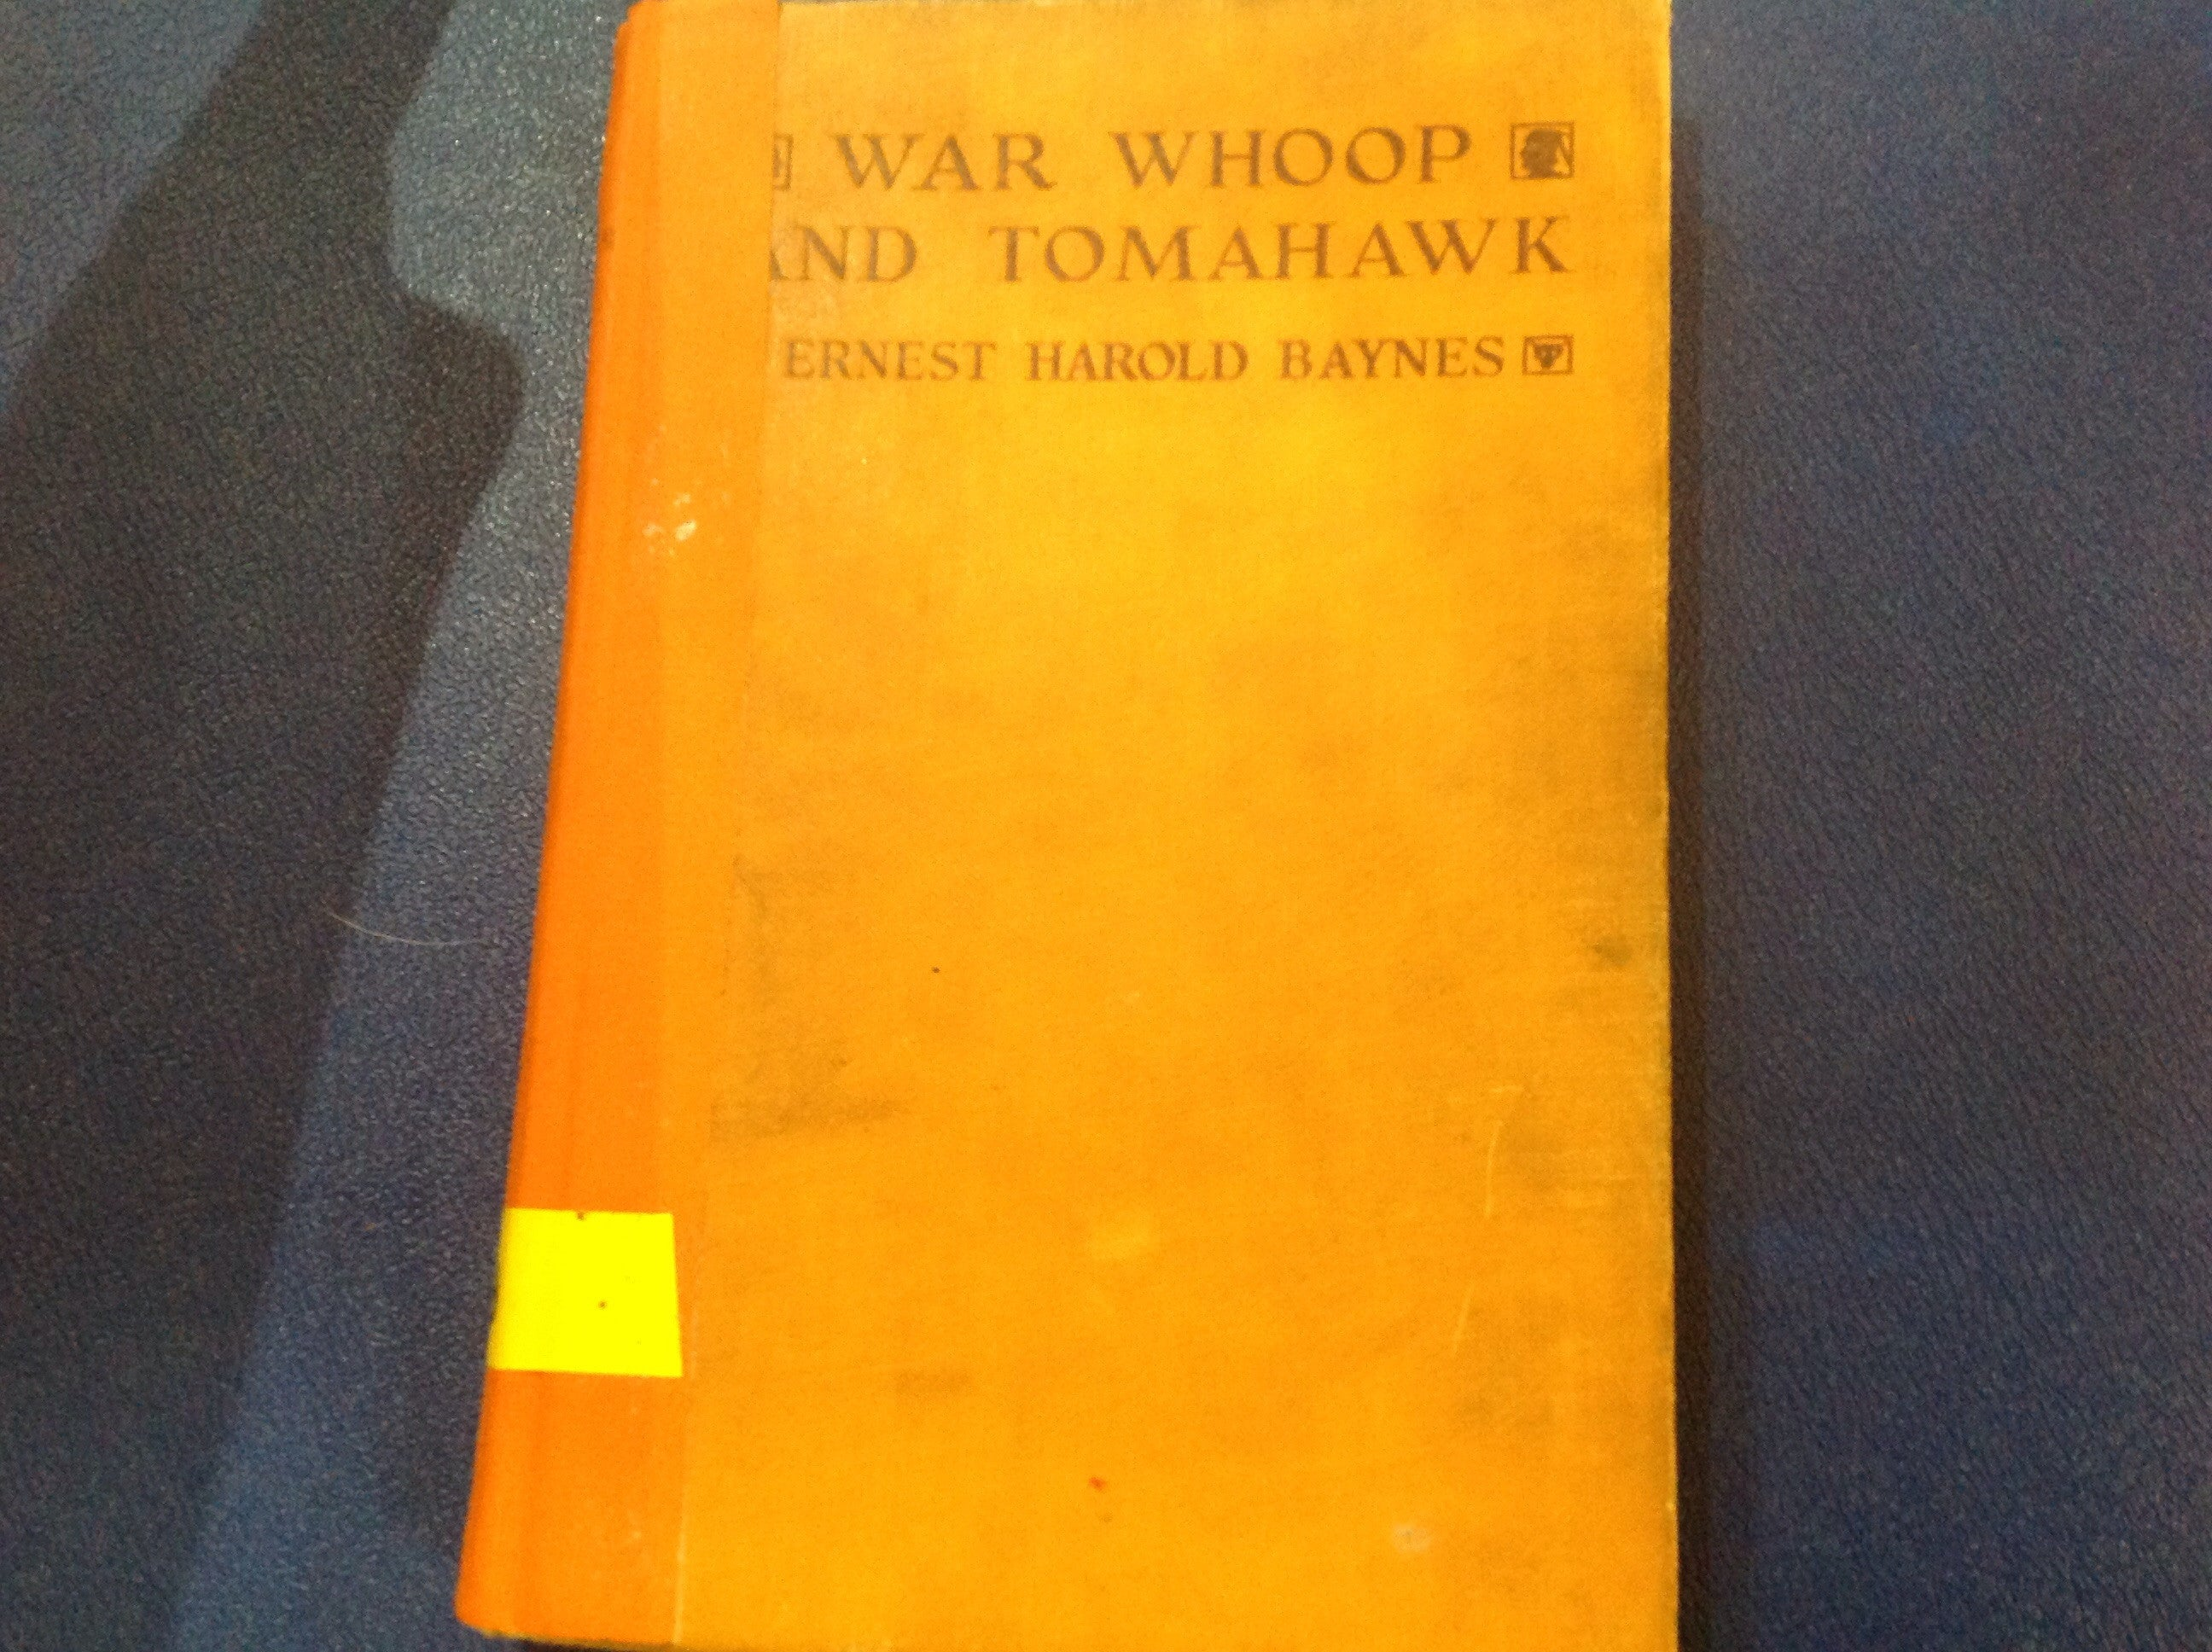 BOOKS - War Whoop and Tomahawk